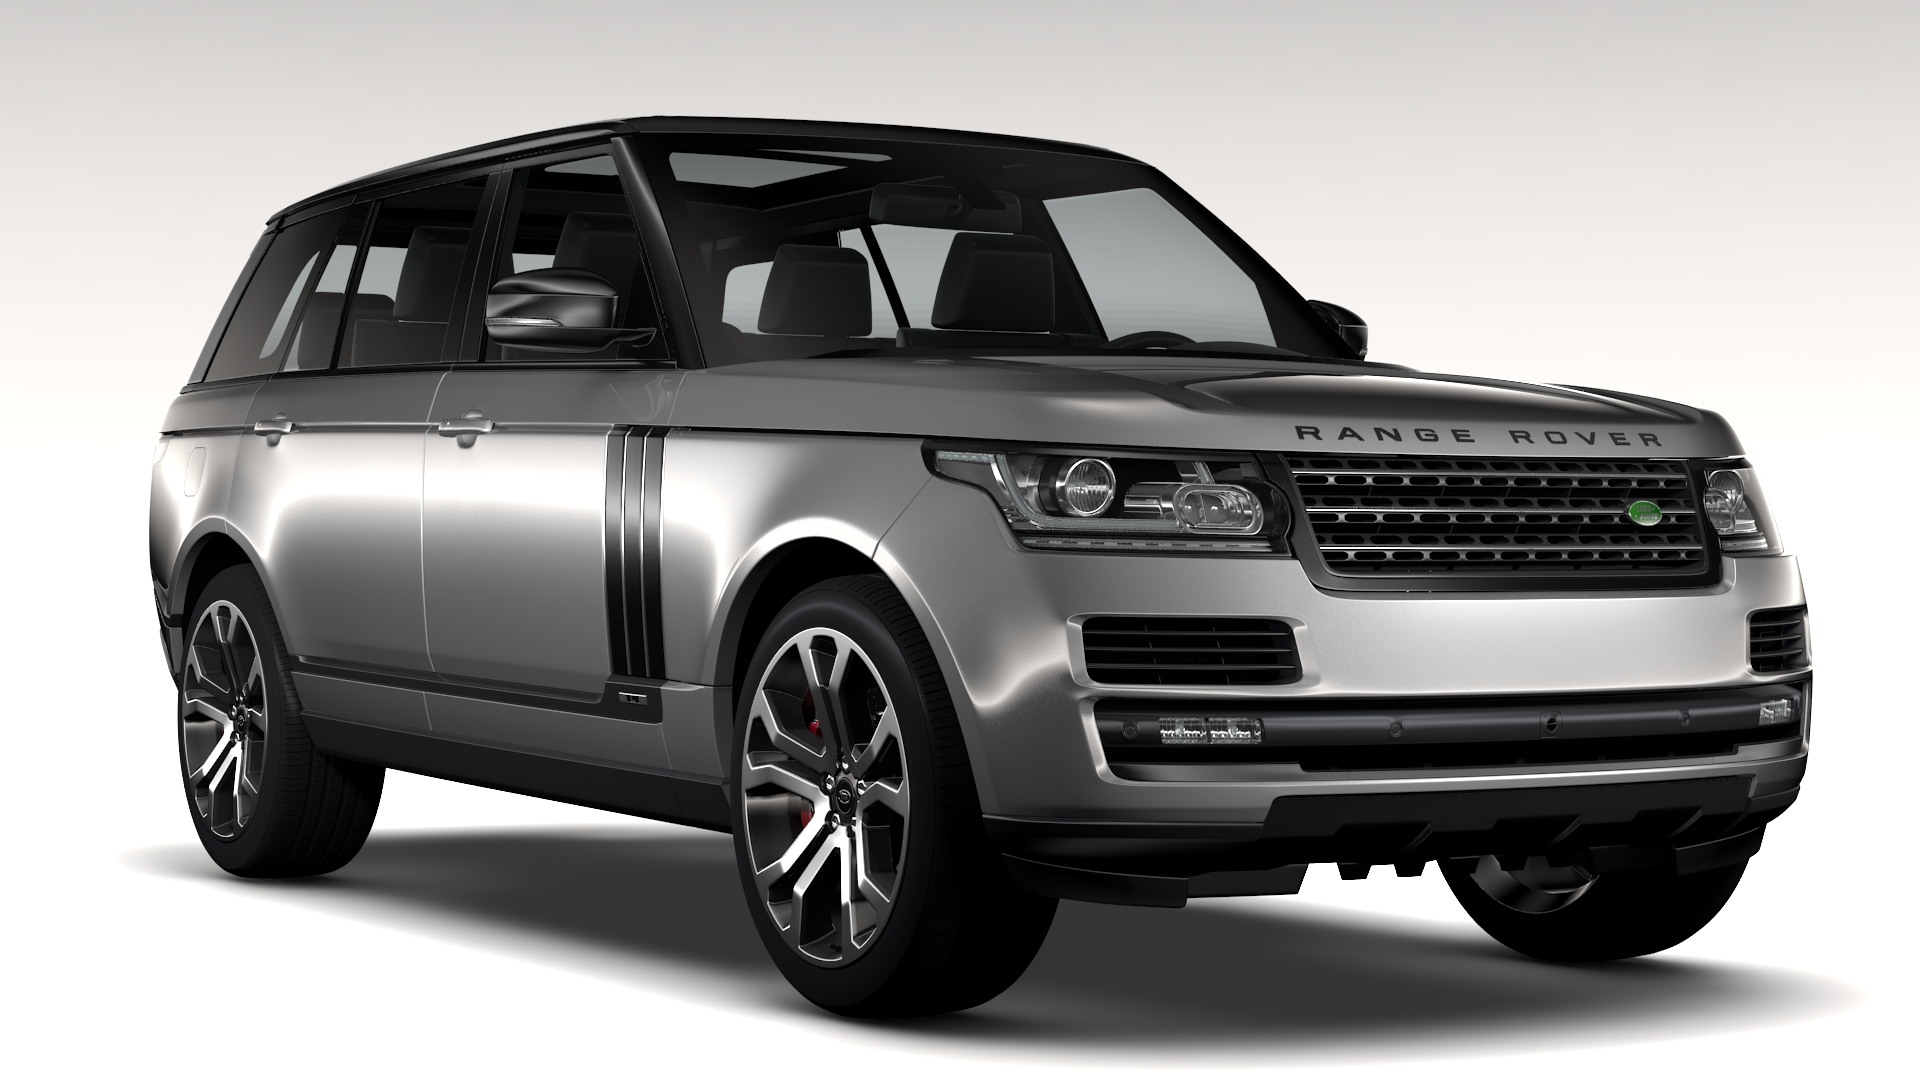 range rover svautobiography dynamic lwb 2017 3d model. Black Bedroom Furniture Sets. Home Design Ideas